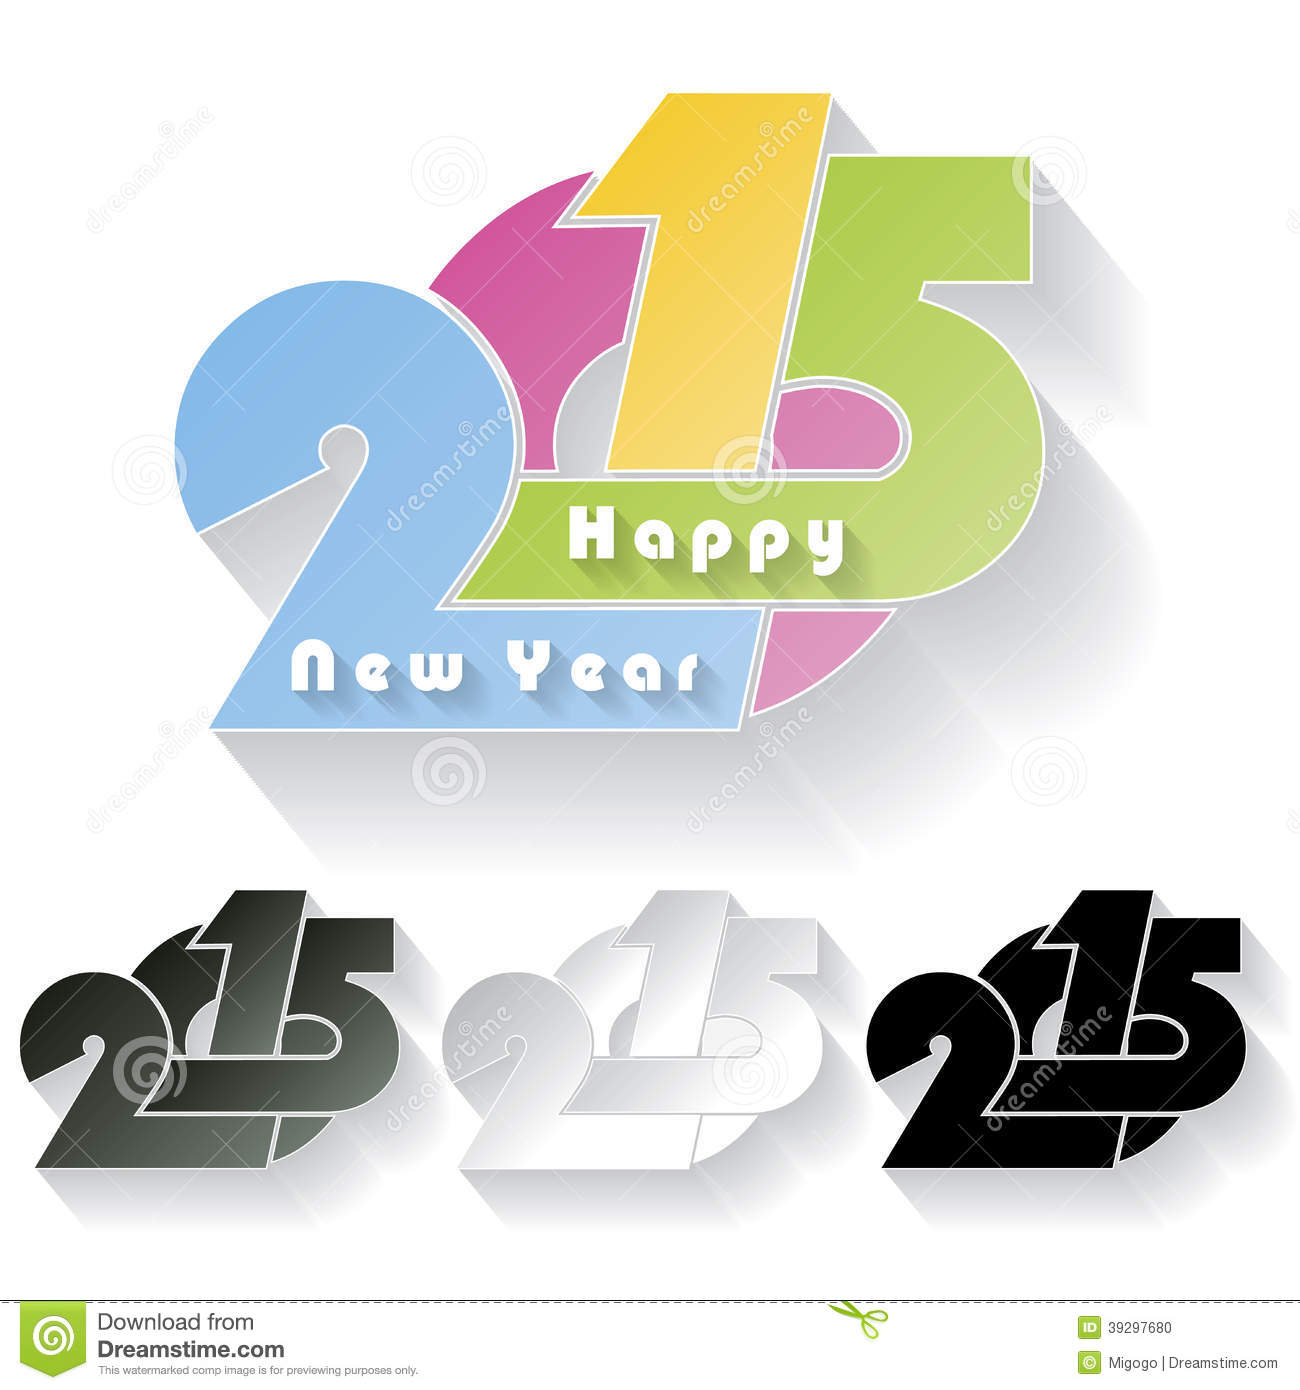 Happy new year 2015 creative greeting card stock illustration happy new year 2015 creative greeting card color festival kristyandbryce Choice Image